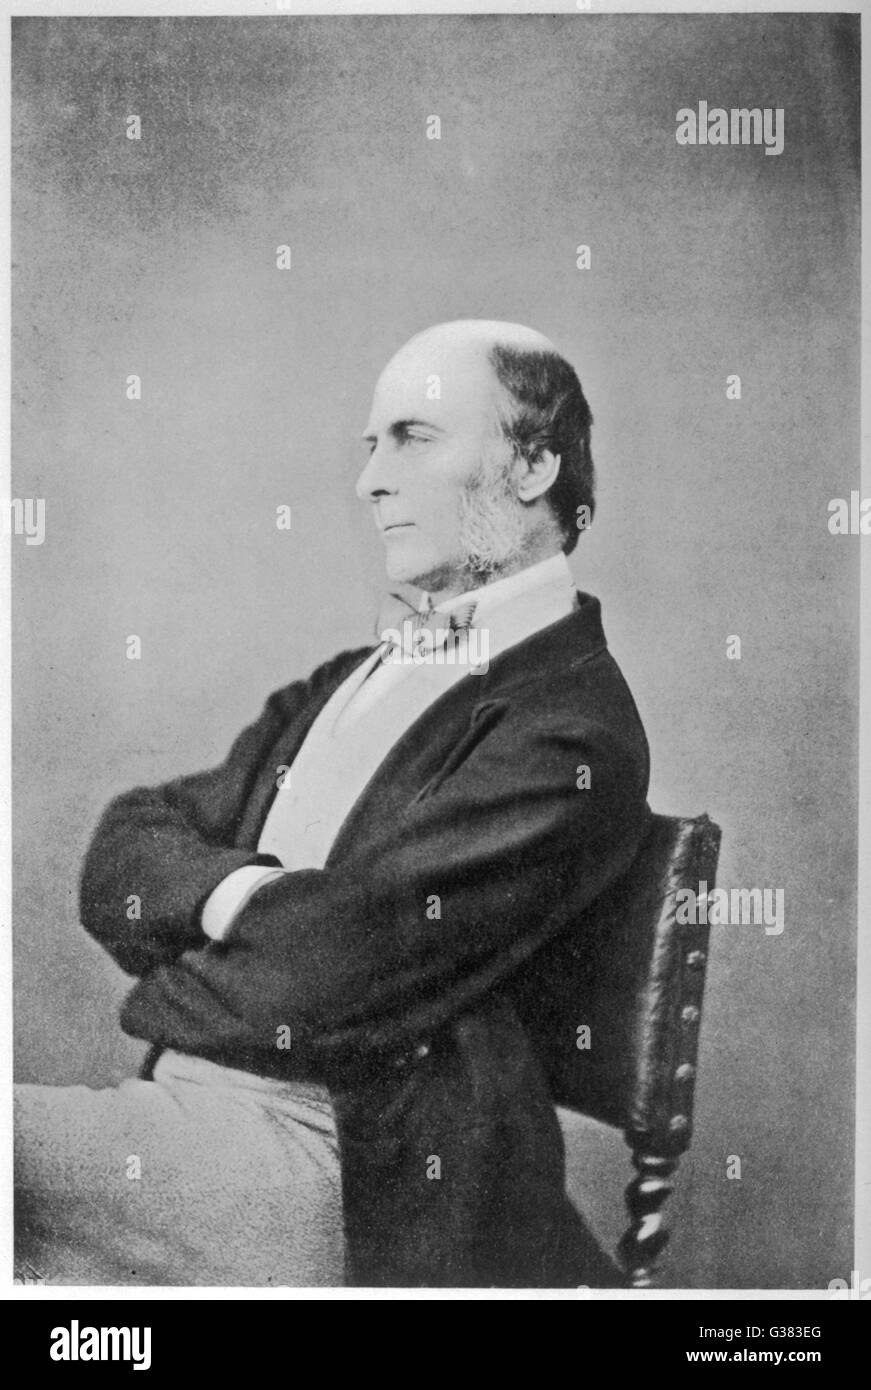 FRANCIS GALTON  Scientist - aged about 50        Date: 1822 - 1911 - Stock Image